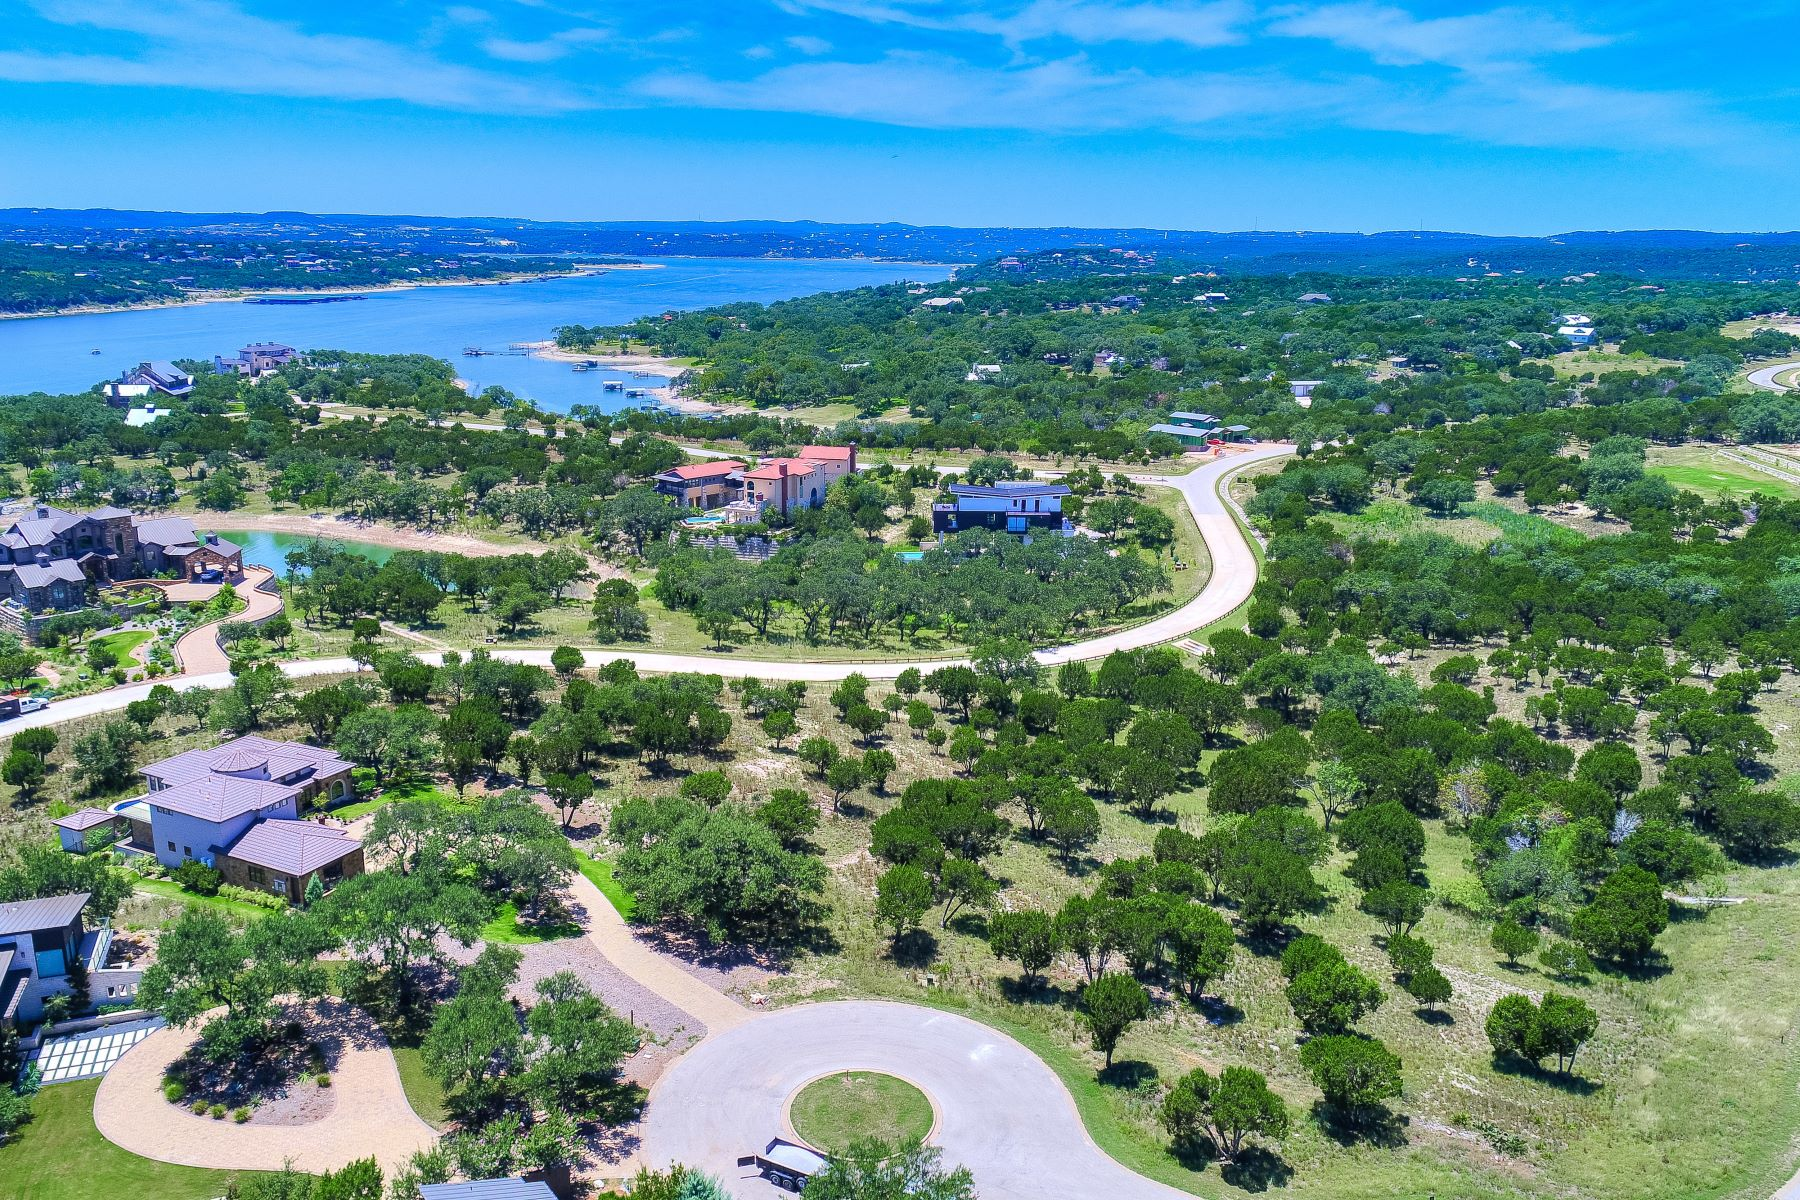 Single Family Home for Sale at Live the Waterfront Lifestyle 19204 Secretariat Place Spicewood, Texas 78669 United States